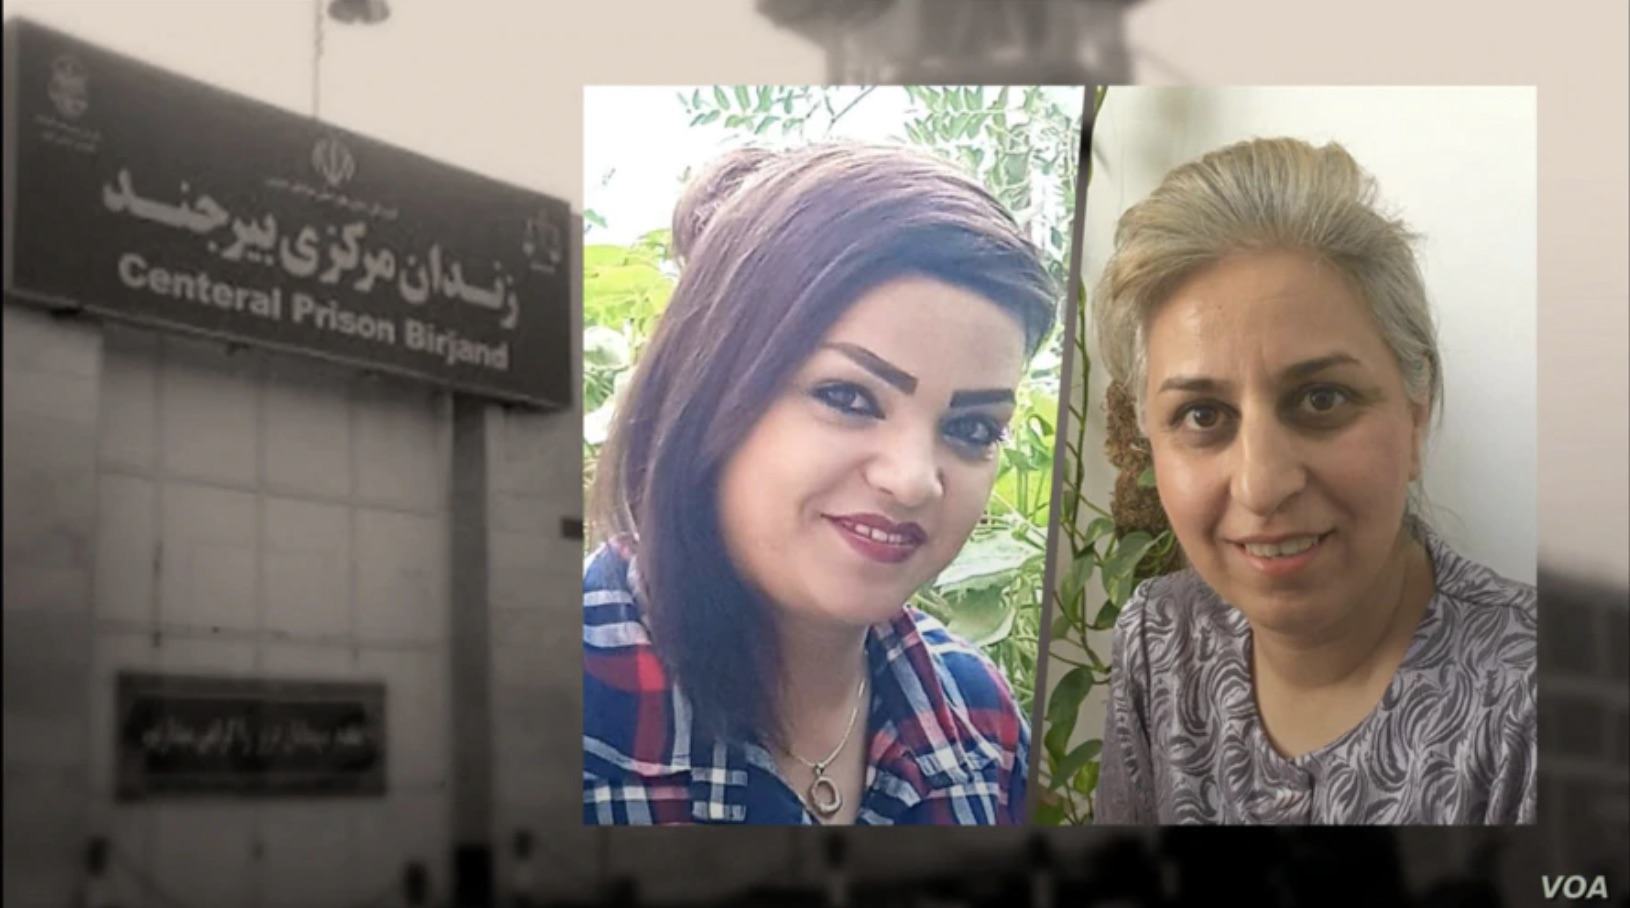 Undated images of Iranian Baha'is Arezoo Mohammadi, left, and Banafsheh Mokhtari, right, who reported to a prison in Birjand, Iran, Oct. 12, 2020, to begin serving sentences for the peaceful practice of their faith, a VOA source says. (VOA Persian)